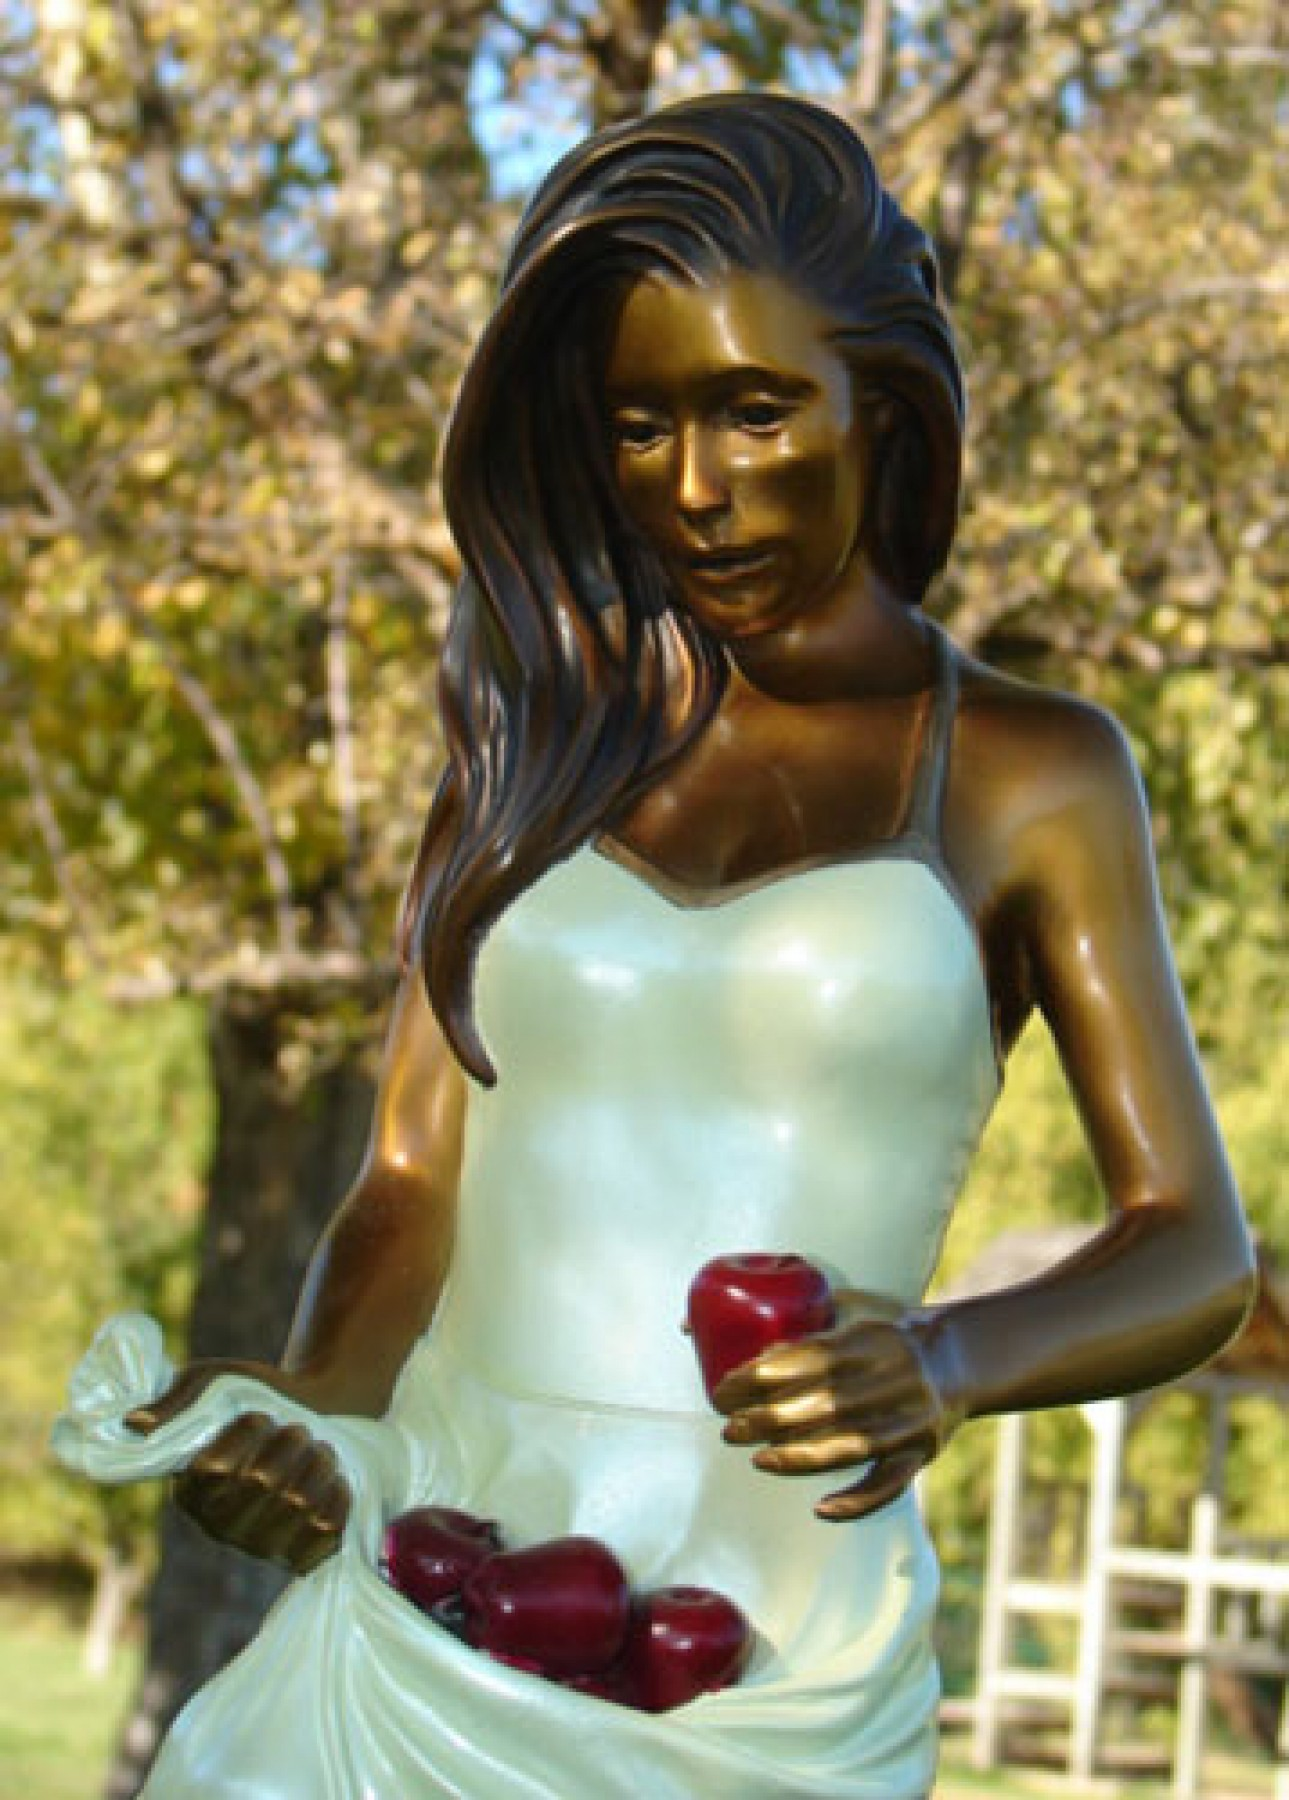 Apples Bronze Sculpture 2009 16 in